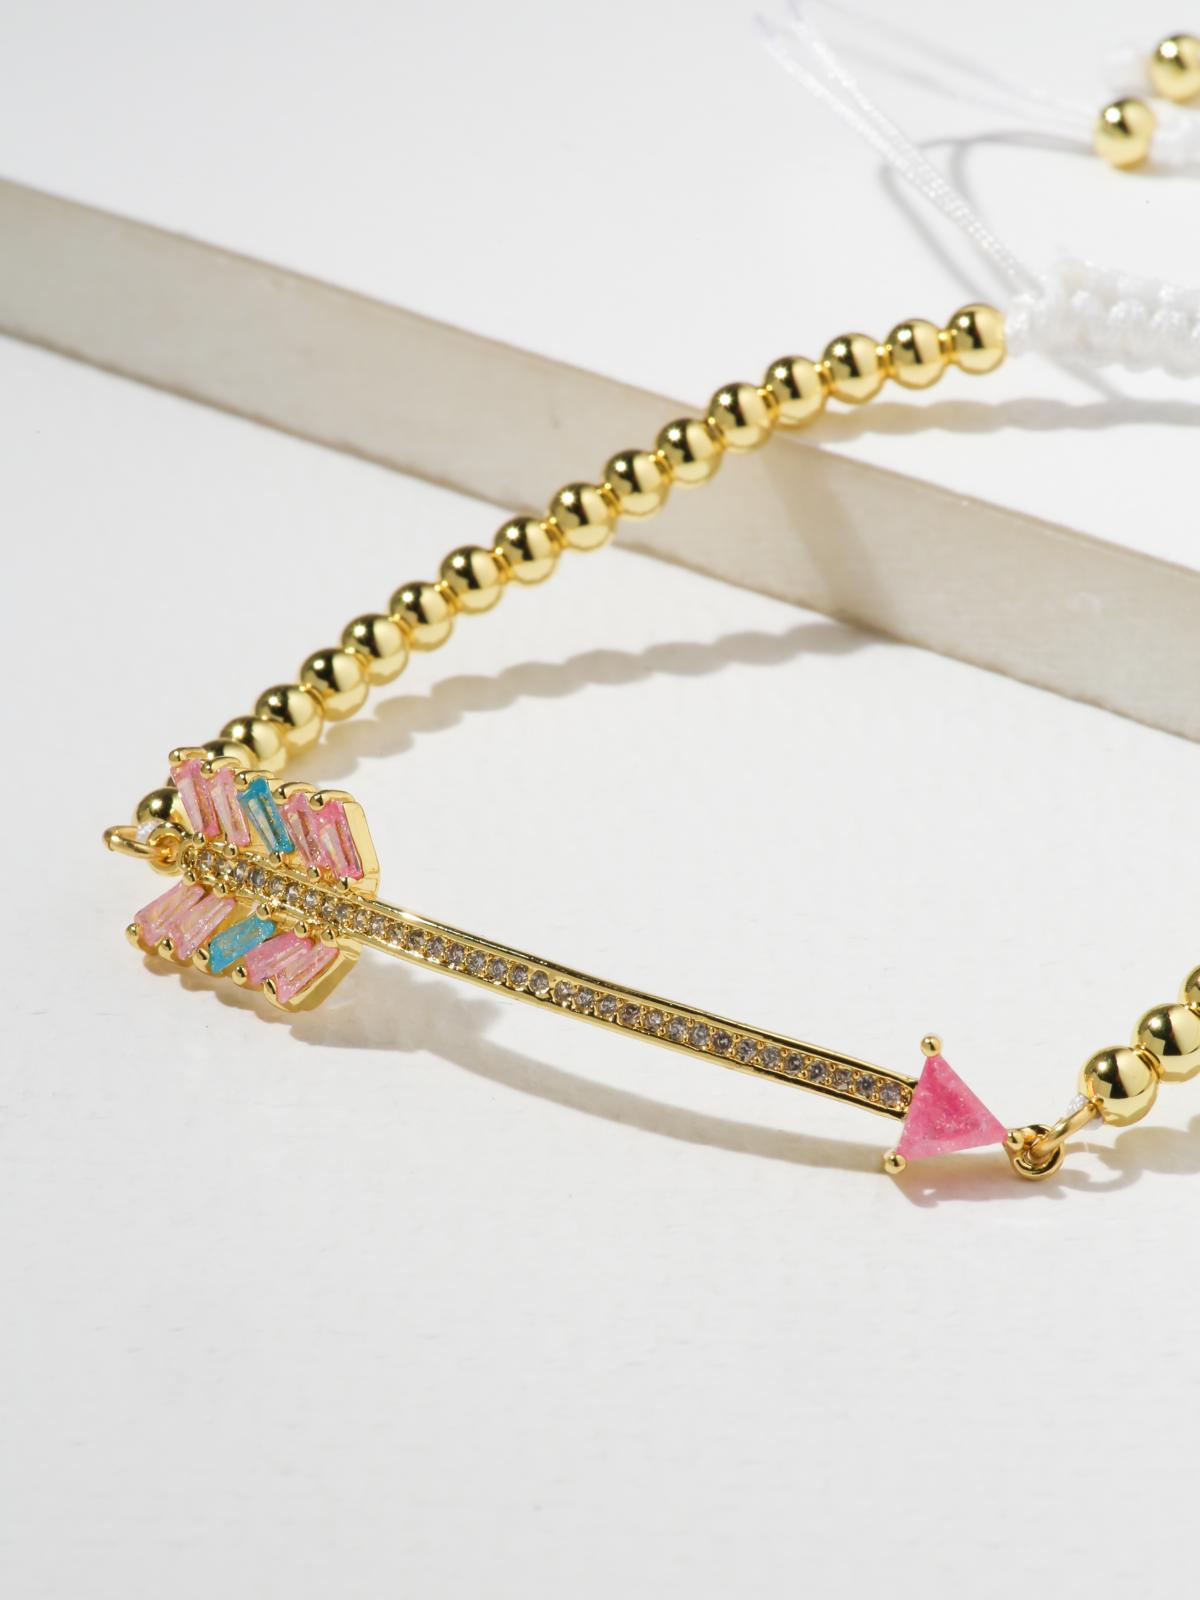 The Cupid Bracelet